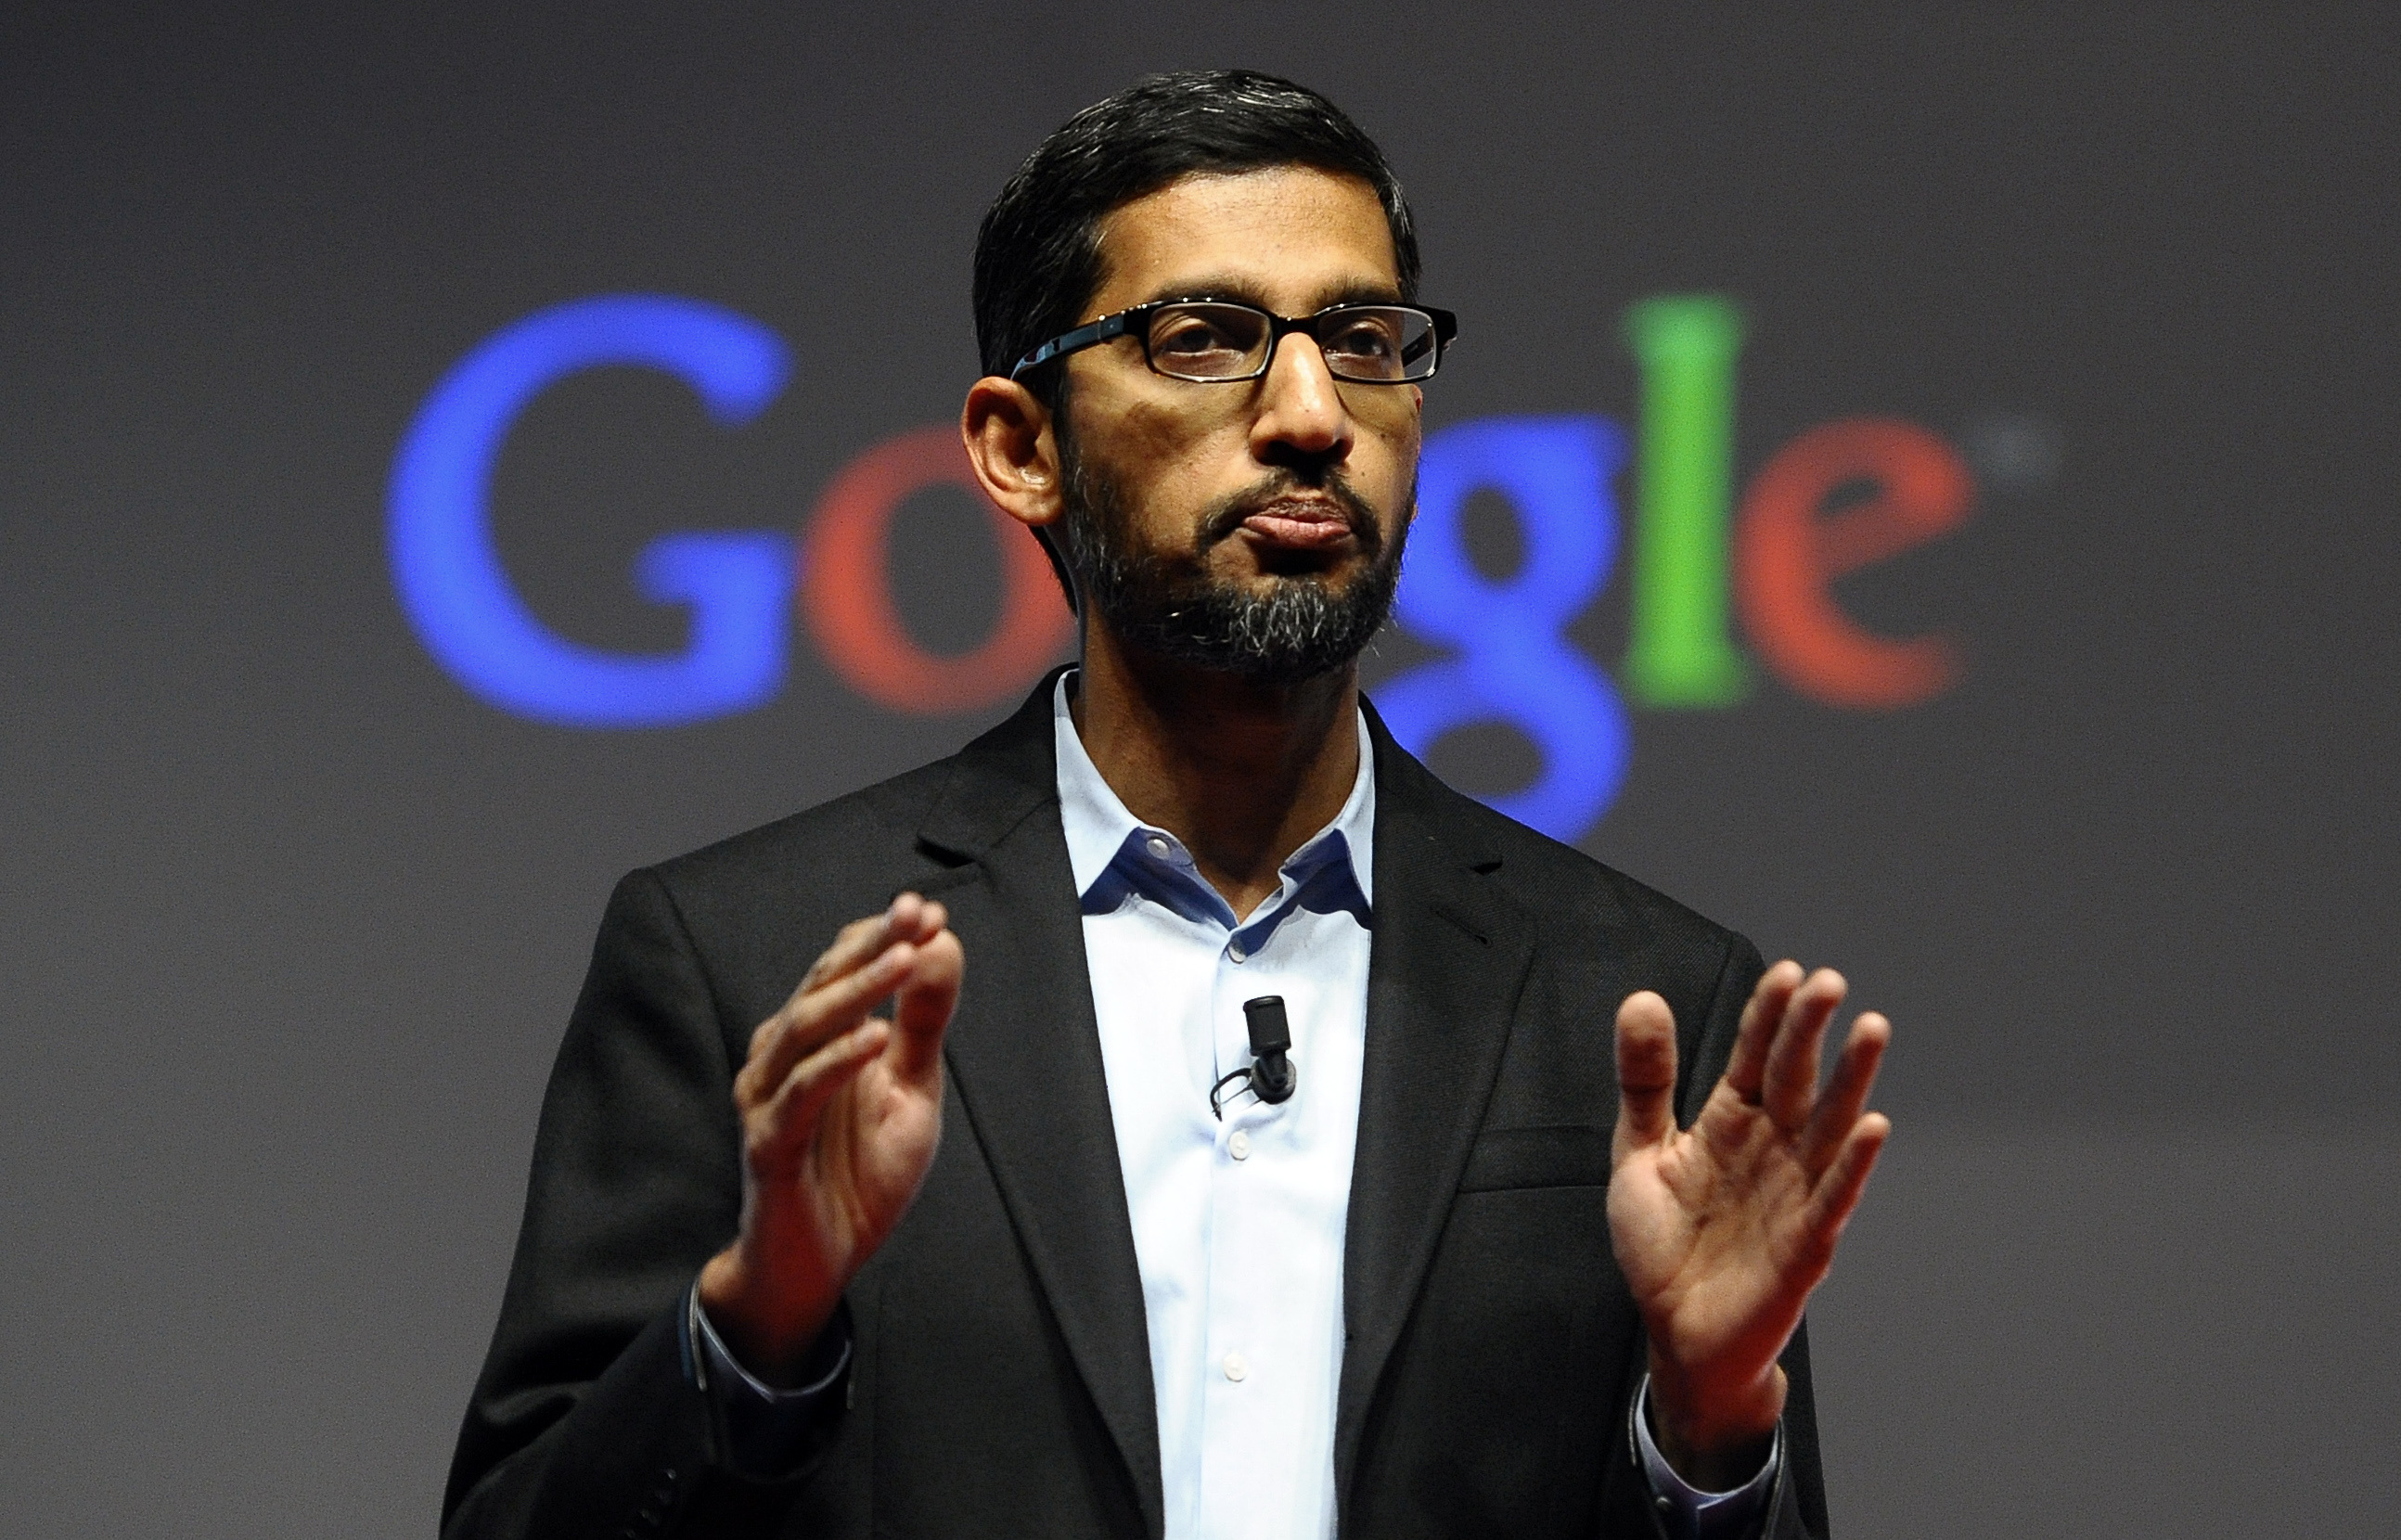 Sundar Pichai, senior vice president of Android, Chrome and Apps, at a conference during the Mobile World Congress, the world's largest mobile phone trade show in Barcelona, Spain, on March 2, 2015. Google is creating a new company, called Alphabet, to oversee its highly lucrative Internet business and a growing flock of other ventures, including some  like building self-driving cars and researching ways to prolong human life  that are known more for their ambition than for turning an immediate profit. Pichai will become CEO of Google's core business, including its search engine, online advertising operation and YouTube video service. (AP Photo/Manu Fernandez, File)